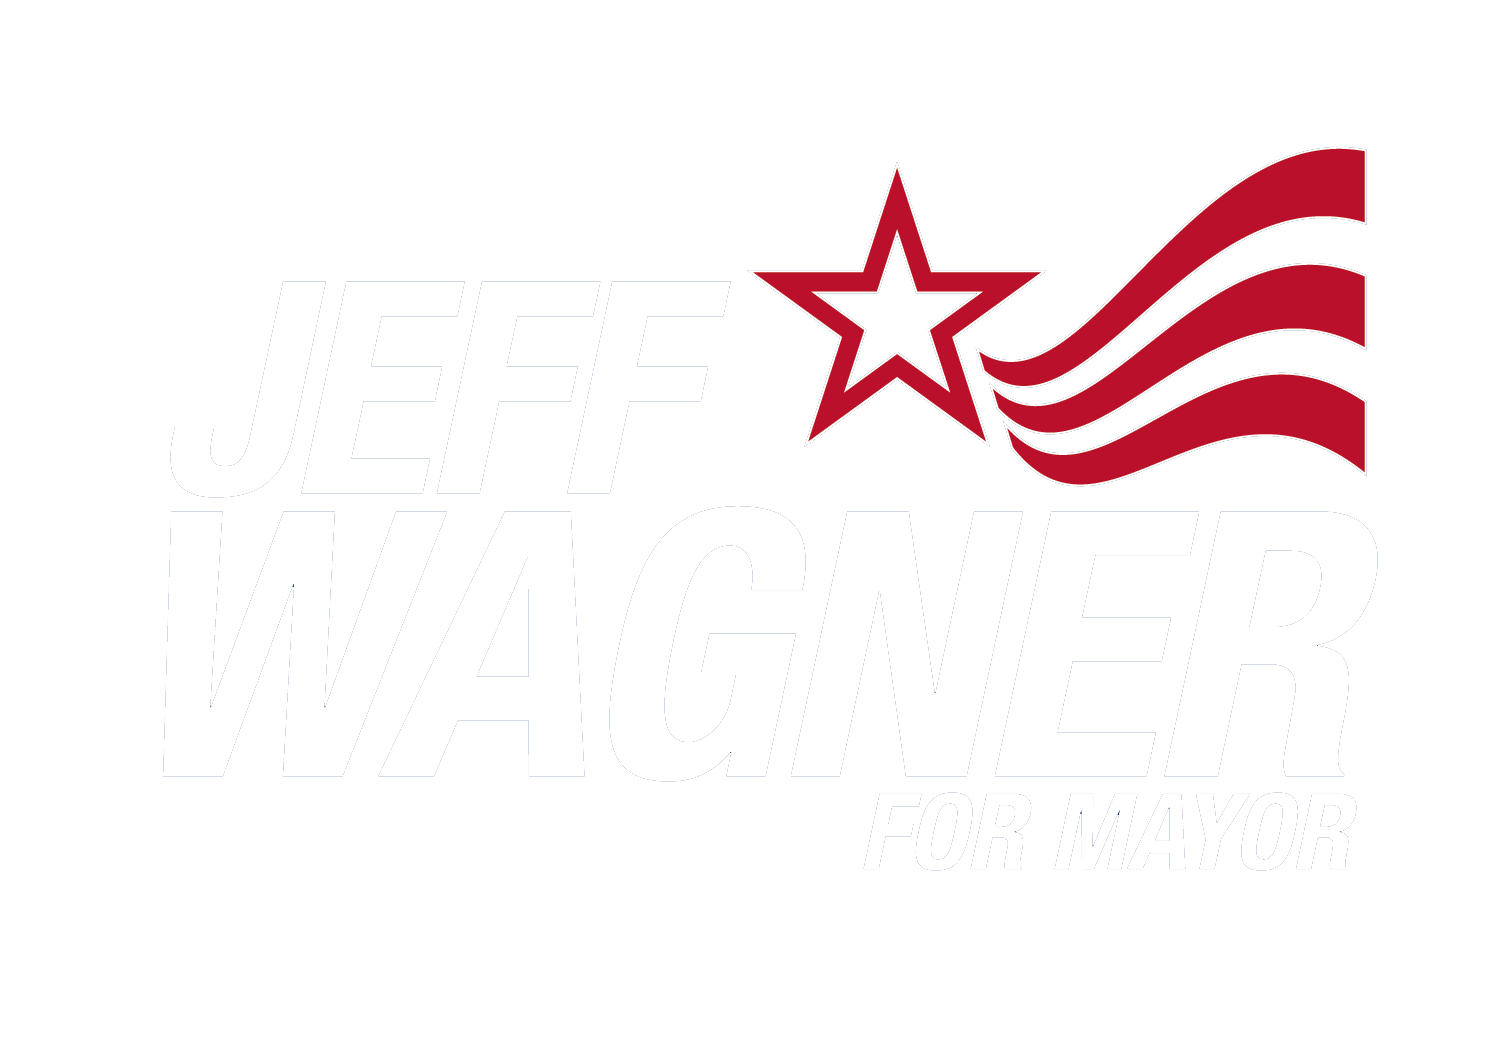 Jeff Wagner for Mayor 2017